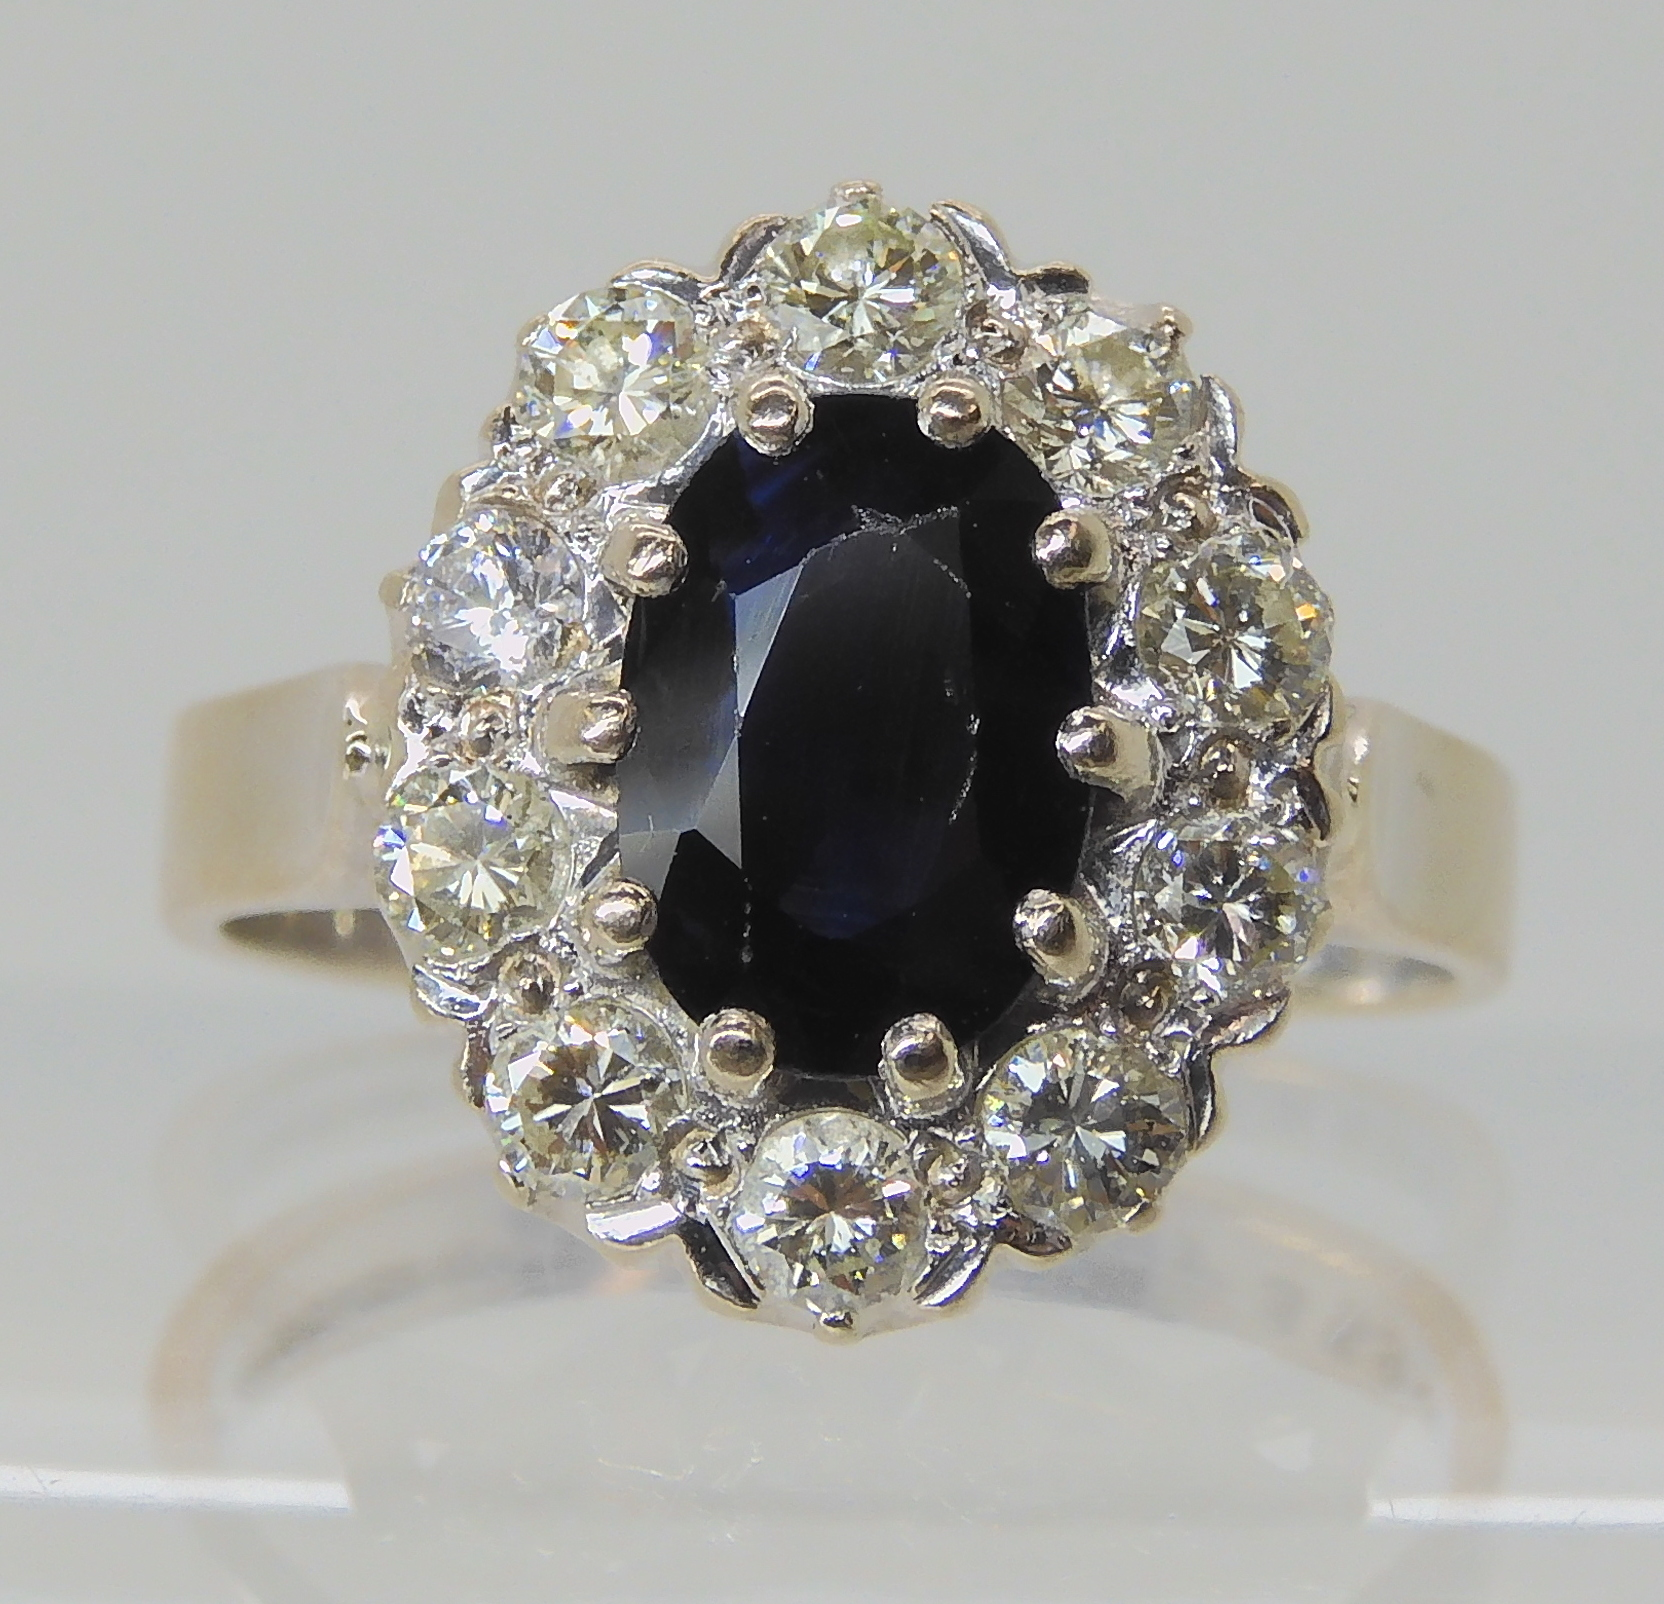 AN 18CT WHITE GOLD SAPPHIRE AND DIAMOND CLUSTER RING set with estimated approx 0.50cts of - Image 4 of 8